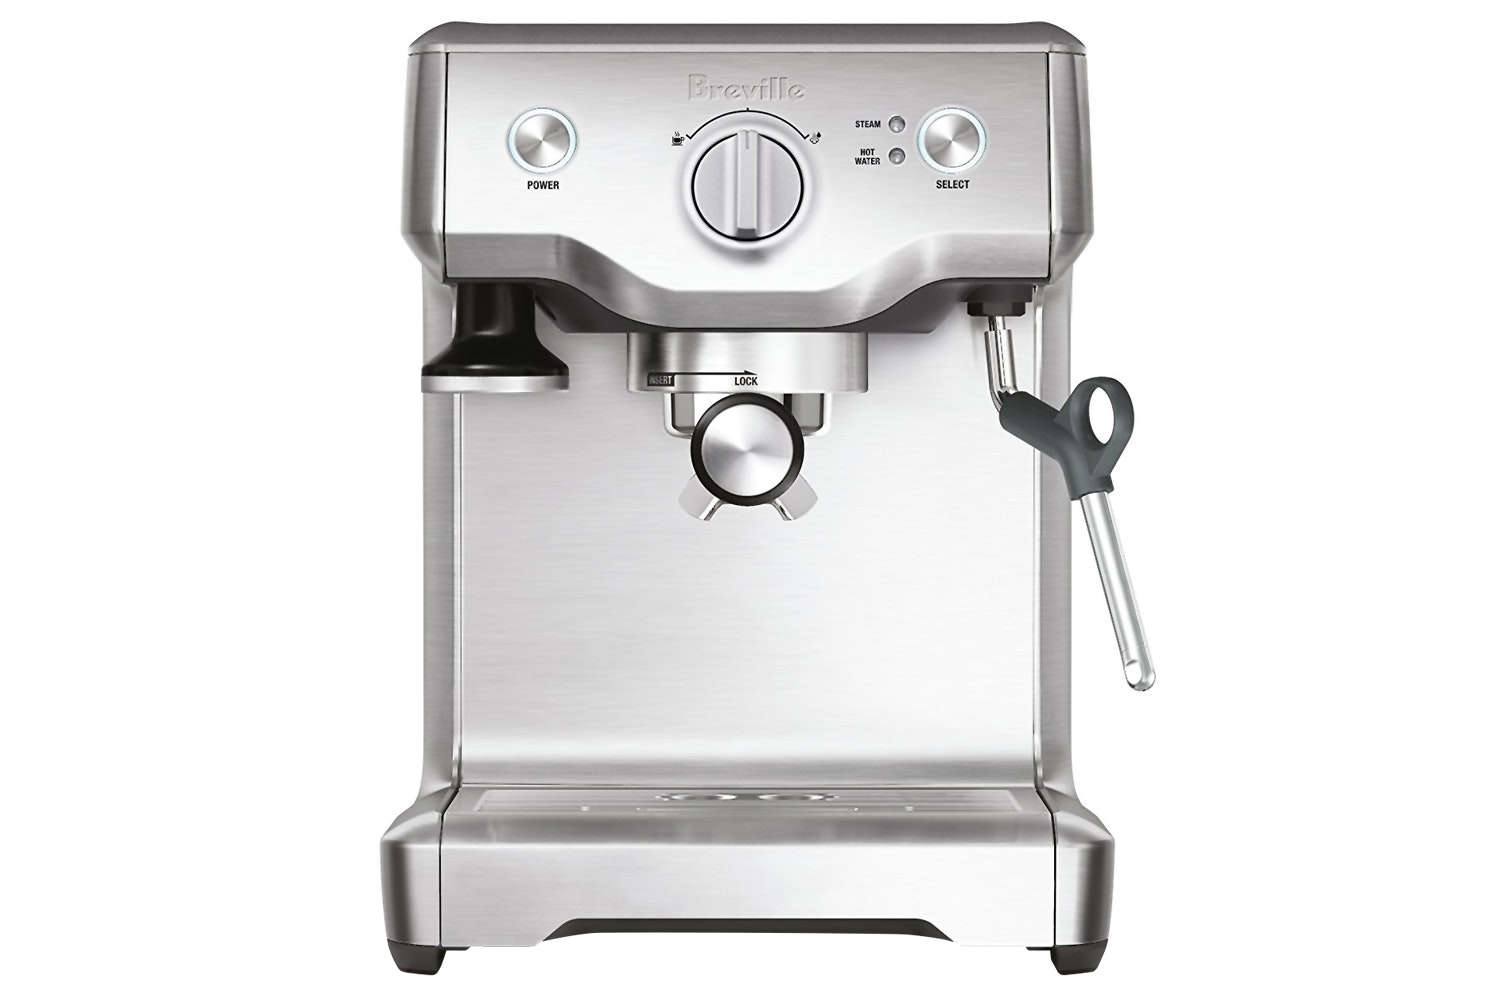 Breville Duo-Temp Pro Espresso Machine | BES810BSS | Stainless Steel